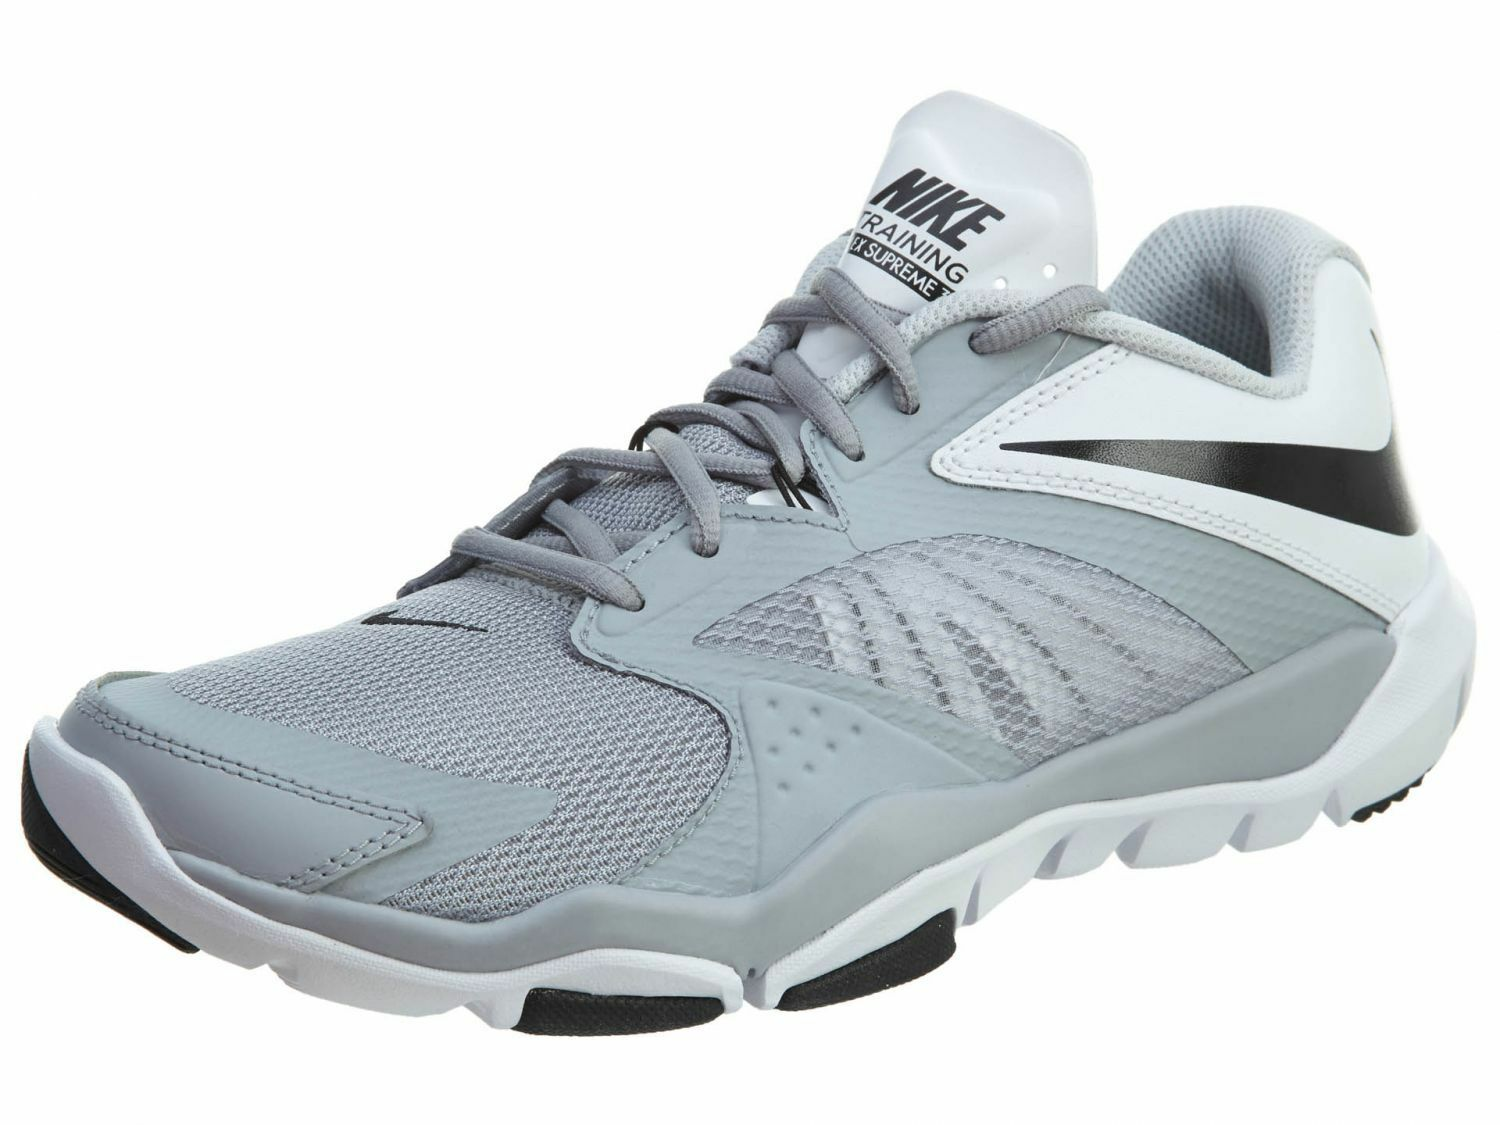 New NIKE Flex Supreme TR 3 Mens Athletic Sneakers Training Shoes Comfortable